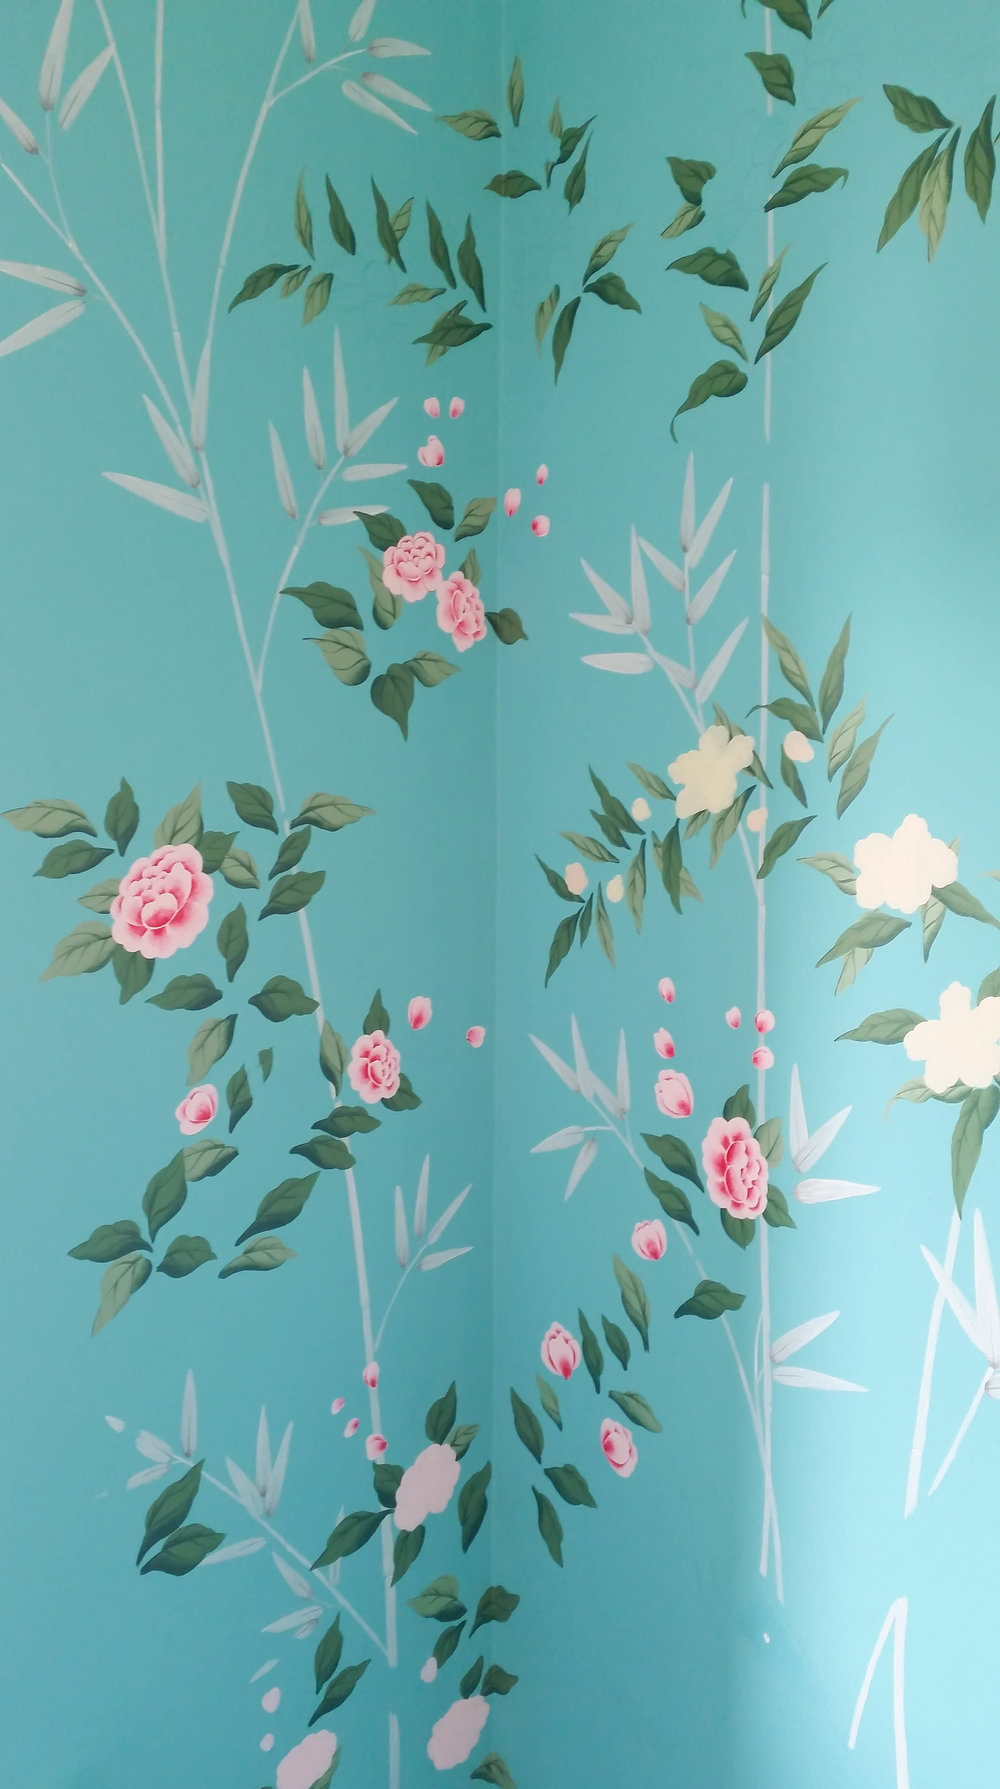 Diane Hill painting leaves and flowers chinoiserie design